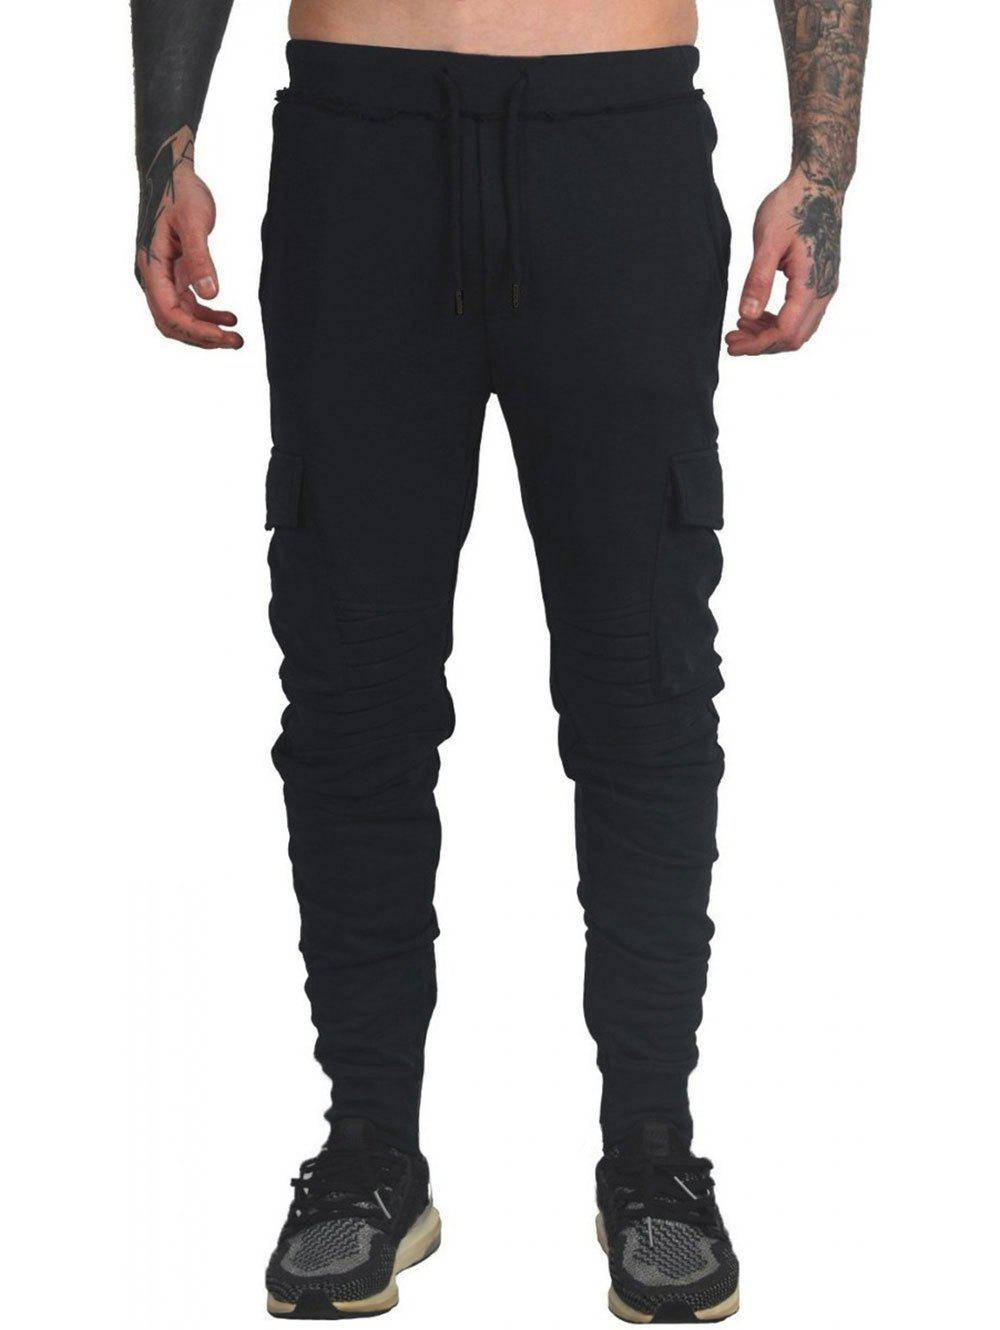 Rosegal Drawstring Ruched Tapered Sports Pants